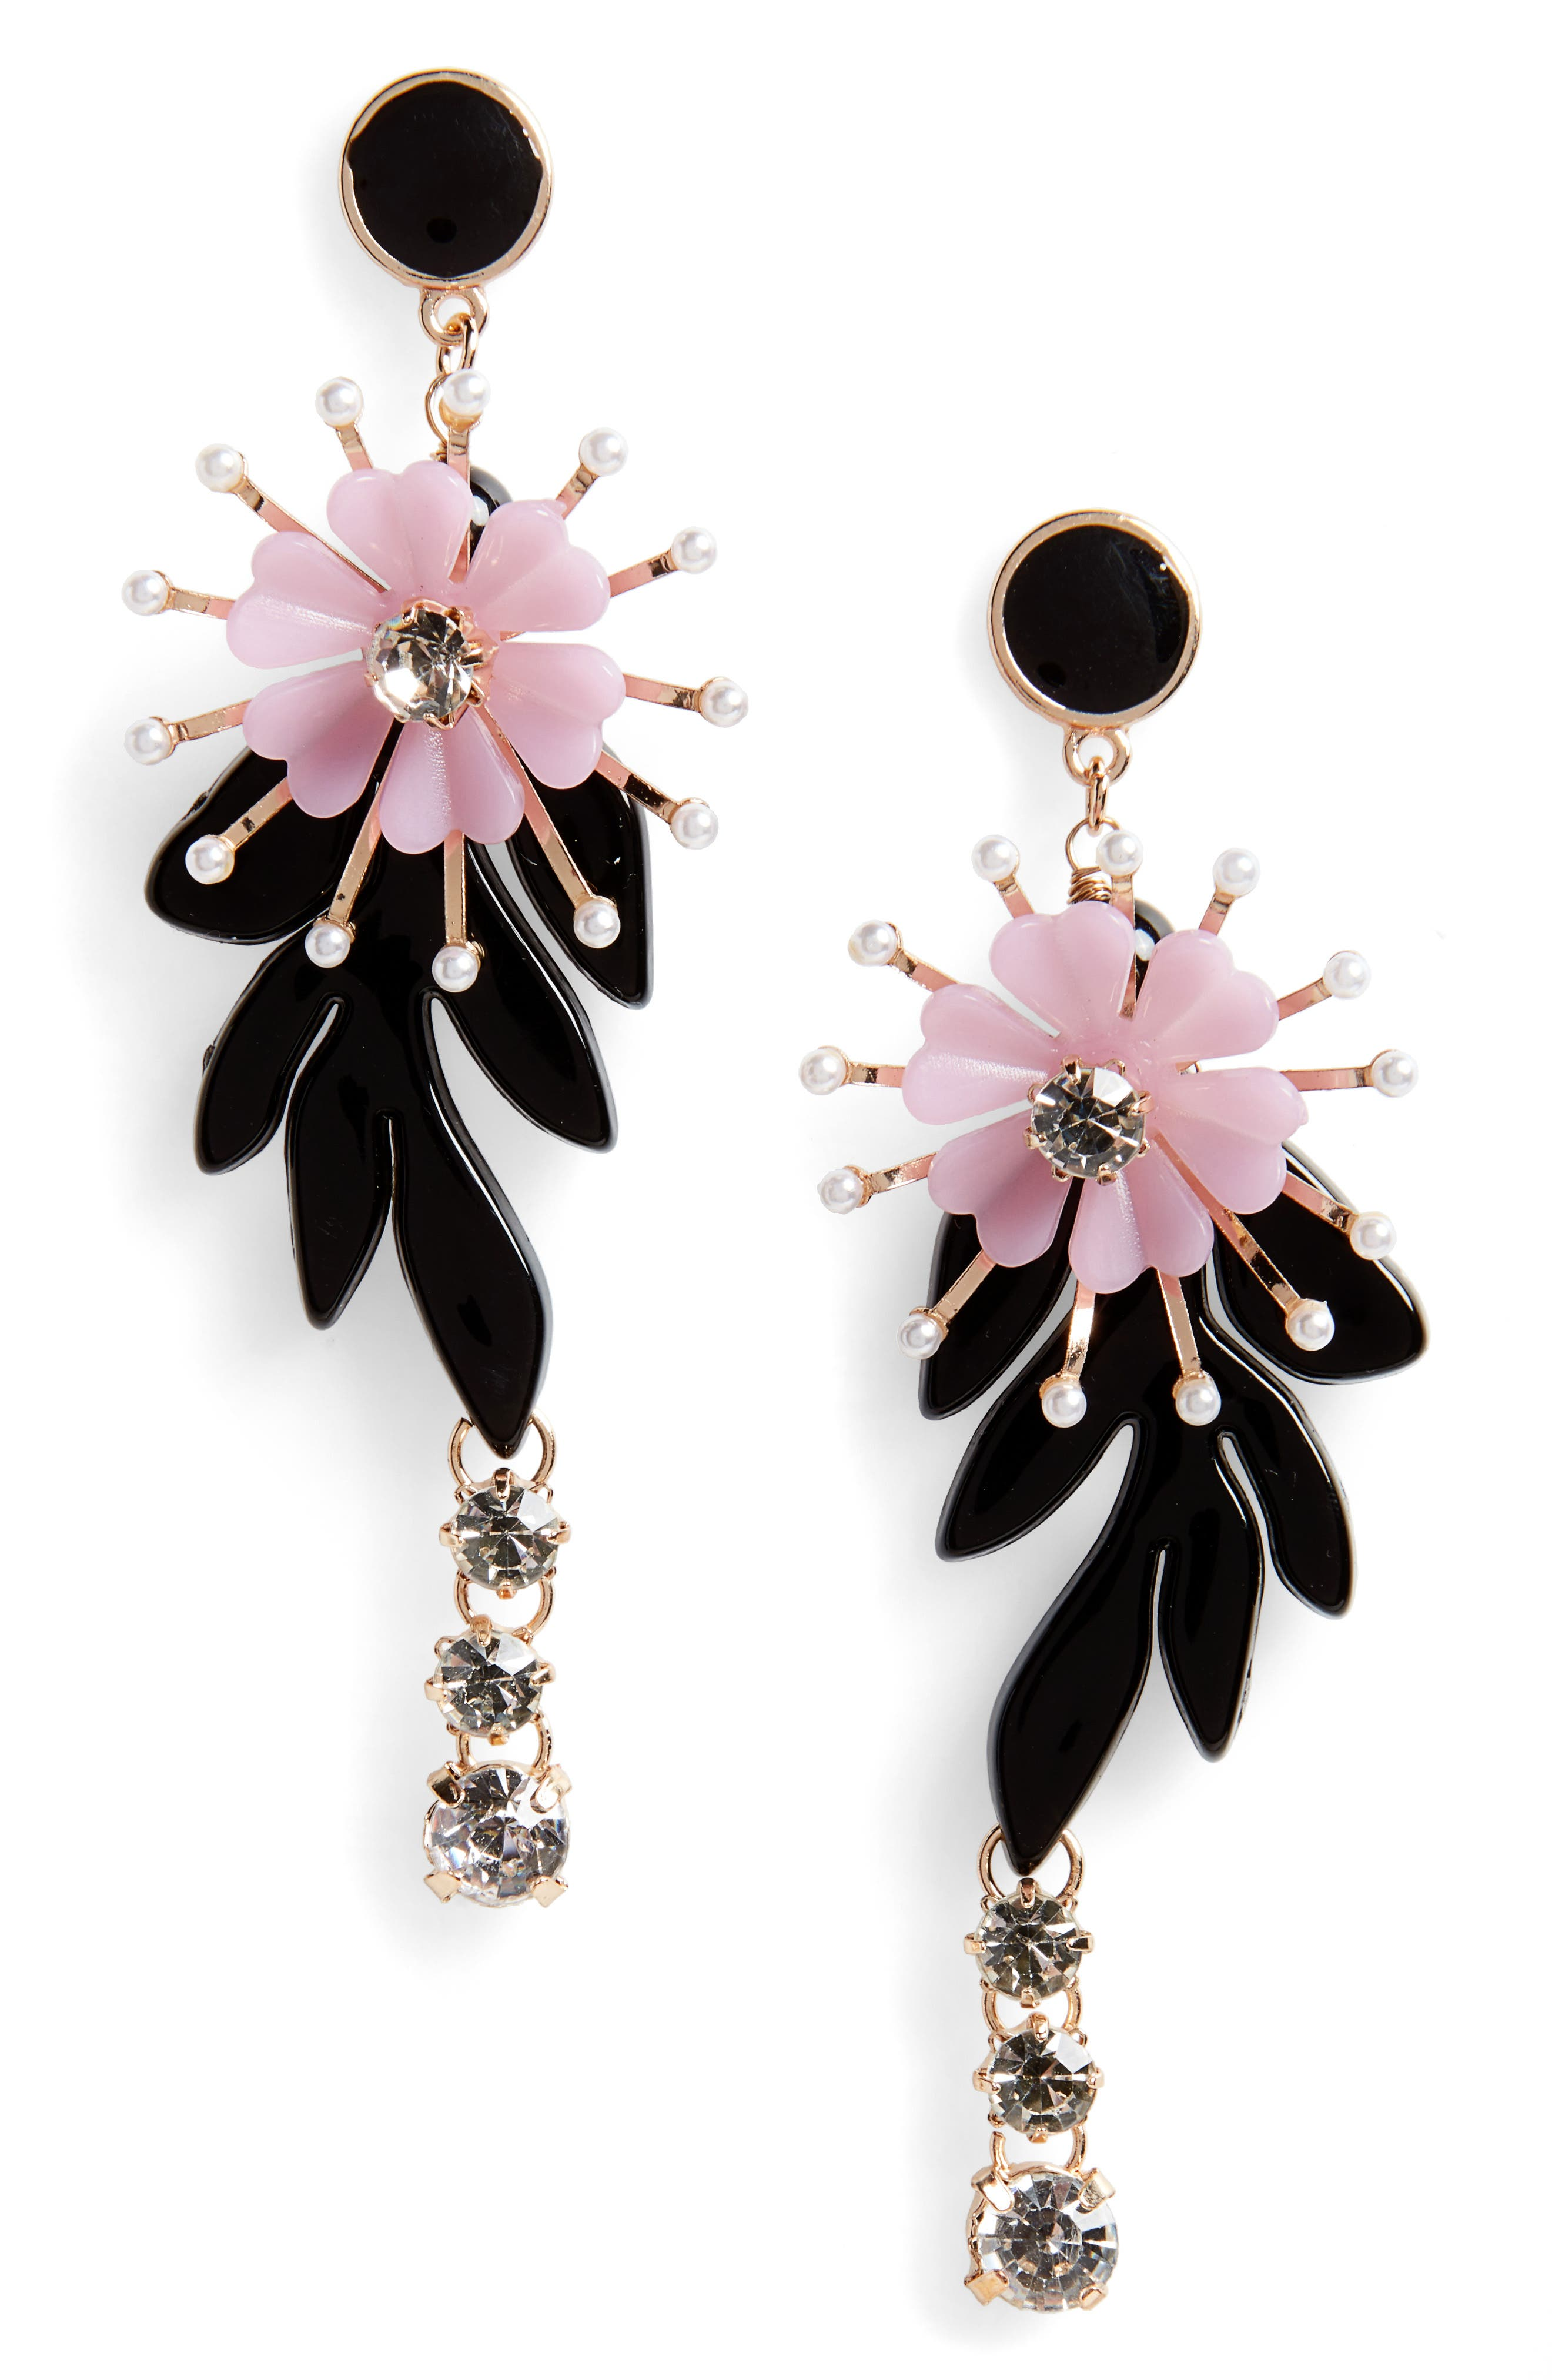 Floral Crystal & Imitation Pearl Drop Earrings,                             Main thumbnail 1, color,                             Gold/ Black/ Purple